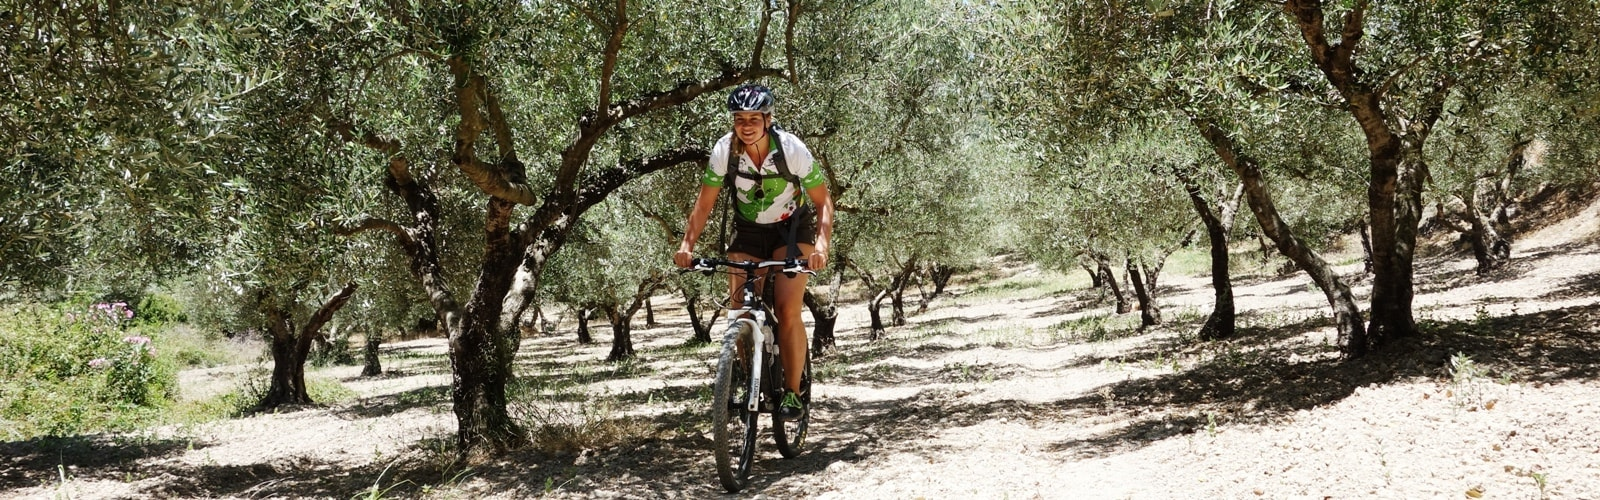 cycling-lady-in-a-an-garden-with-olive-trees-at-deliana-canyon-crete-min